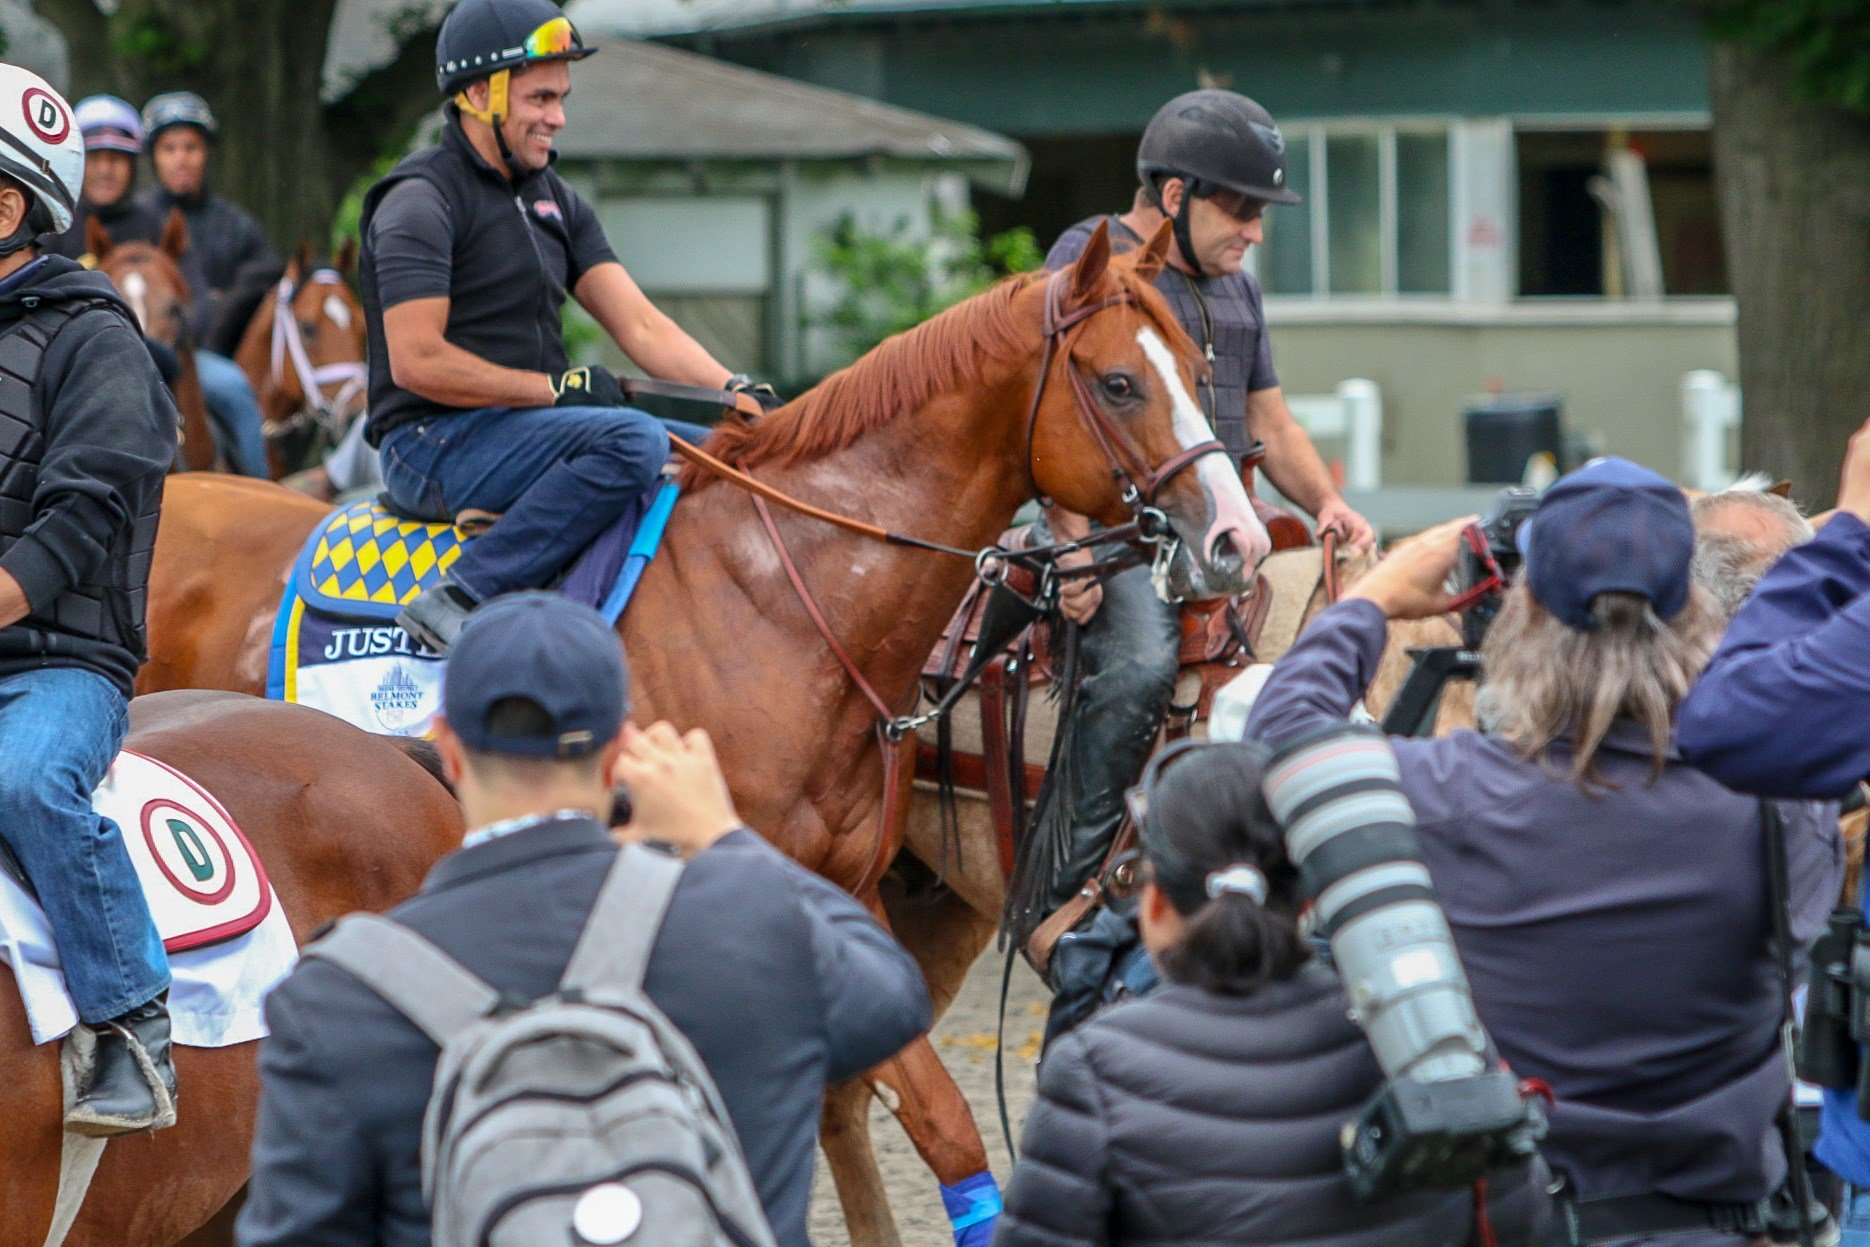 Justify walks past photographers back to the barn after galloping at Belmont Thursday. (WDRB photo by Eric Crawford)